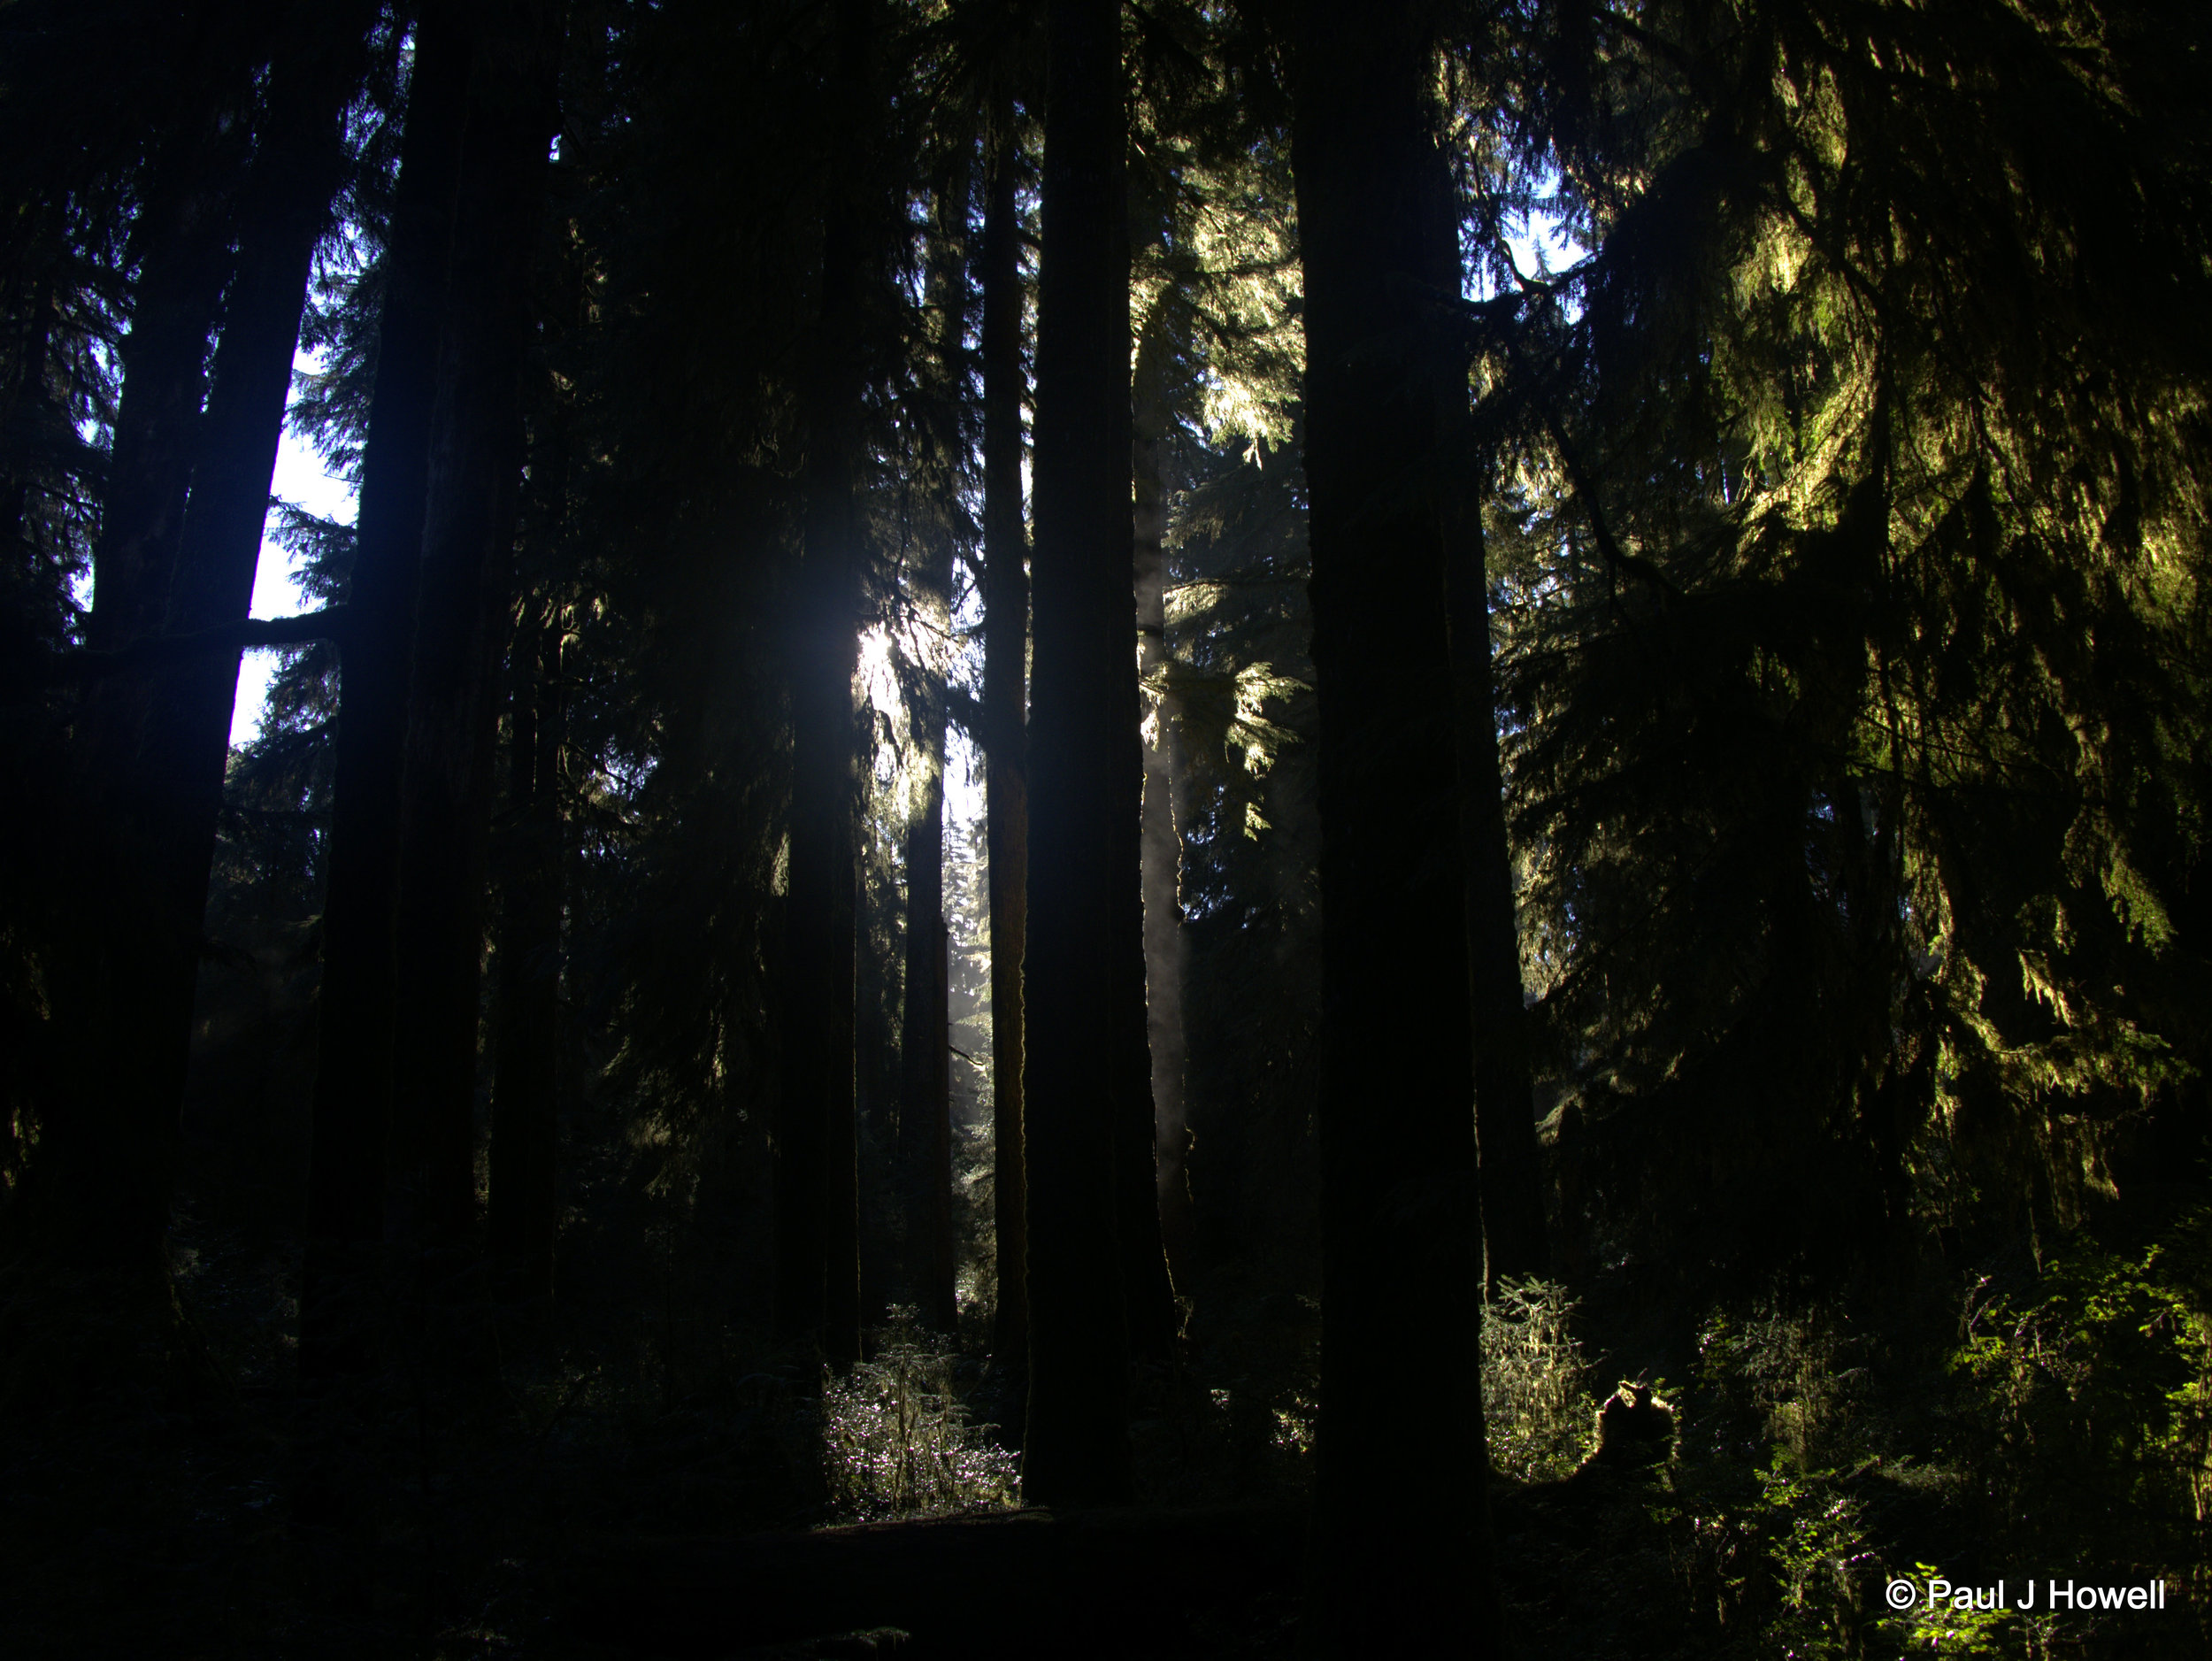 Hoh Rainforest - Penetrating Light